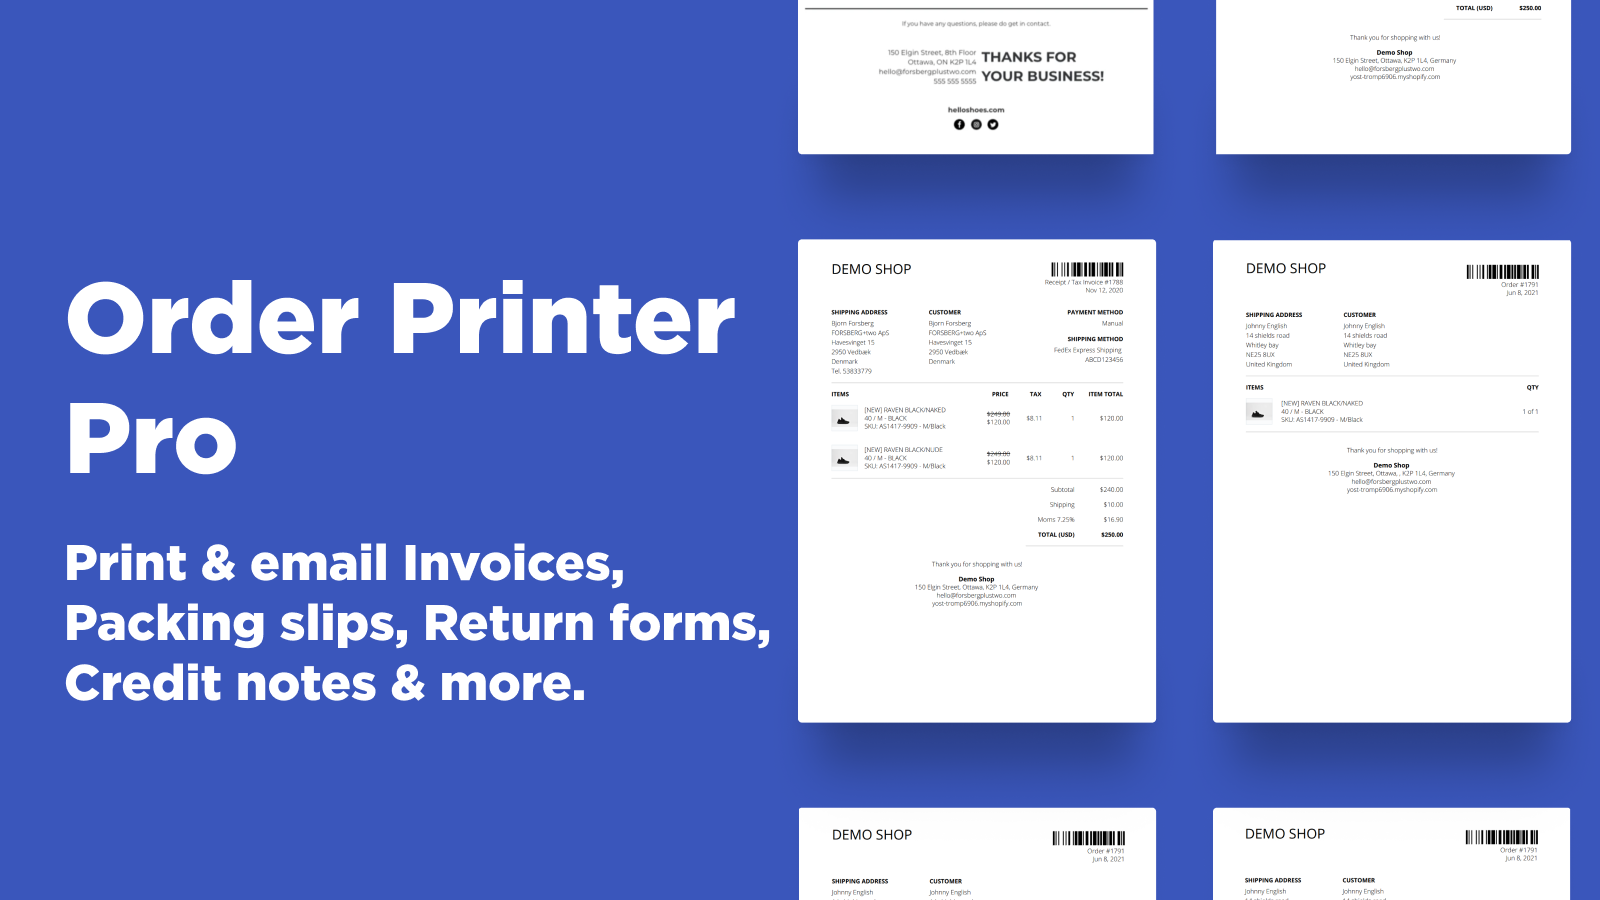 Shopify Order Printer - Print Invoices, Packing Slips & more